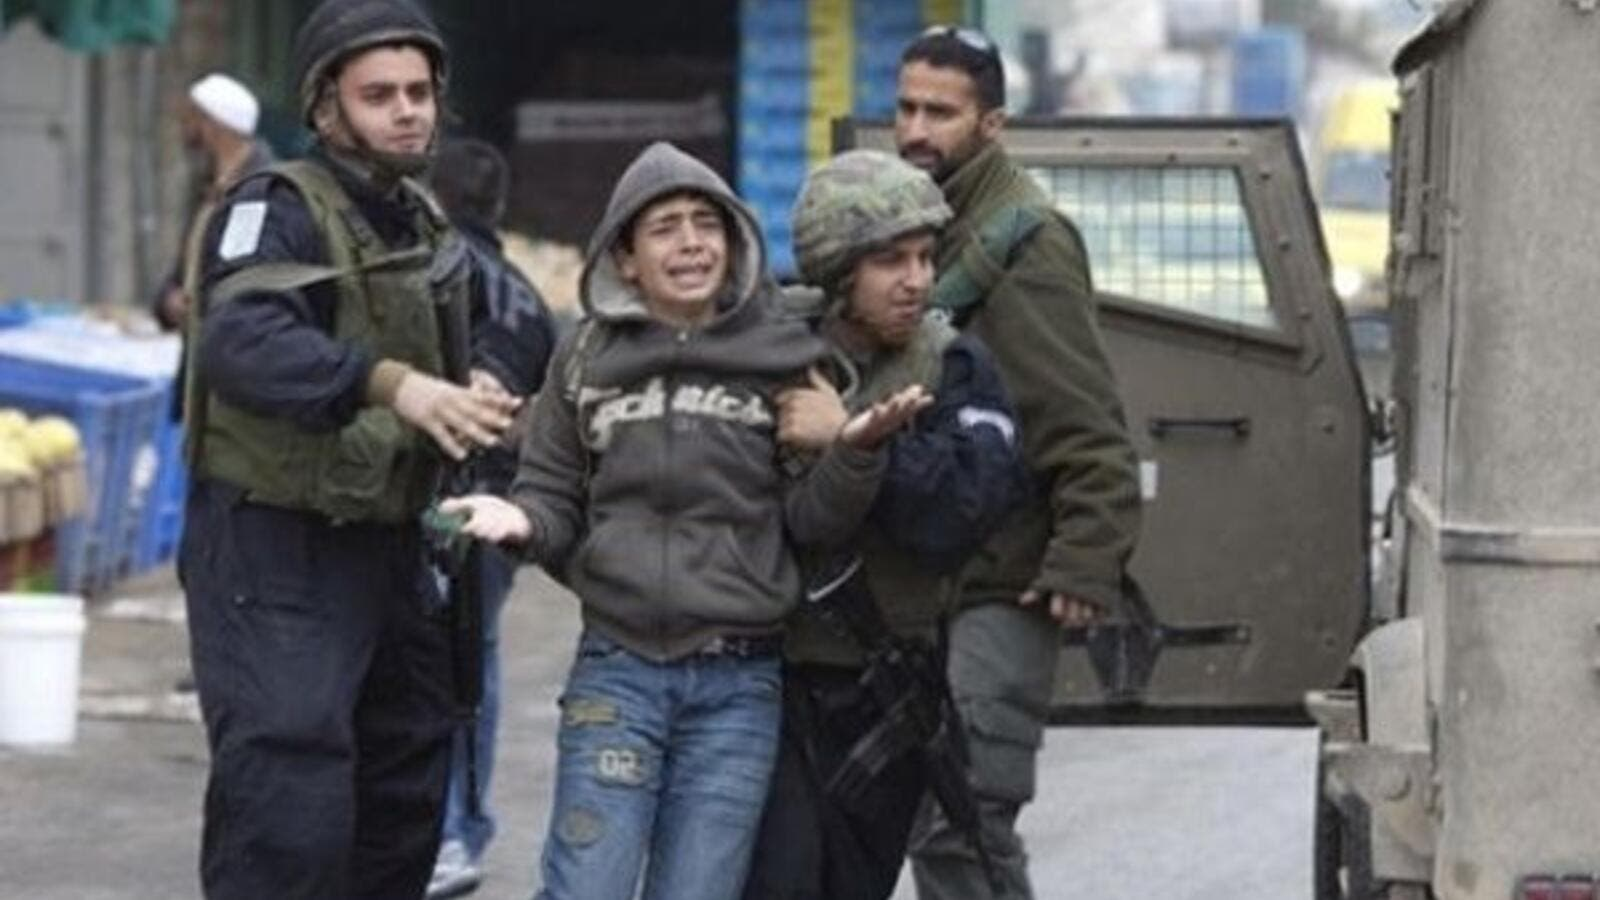 A rights group says more than 300 Palestinian children are currently in prison in Israel and exposed to ill treatment. (AFP)